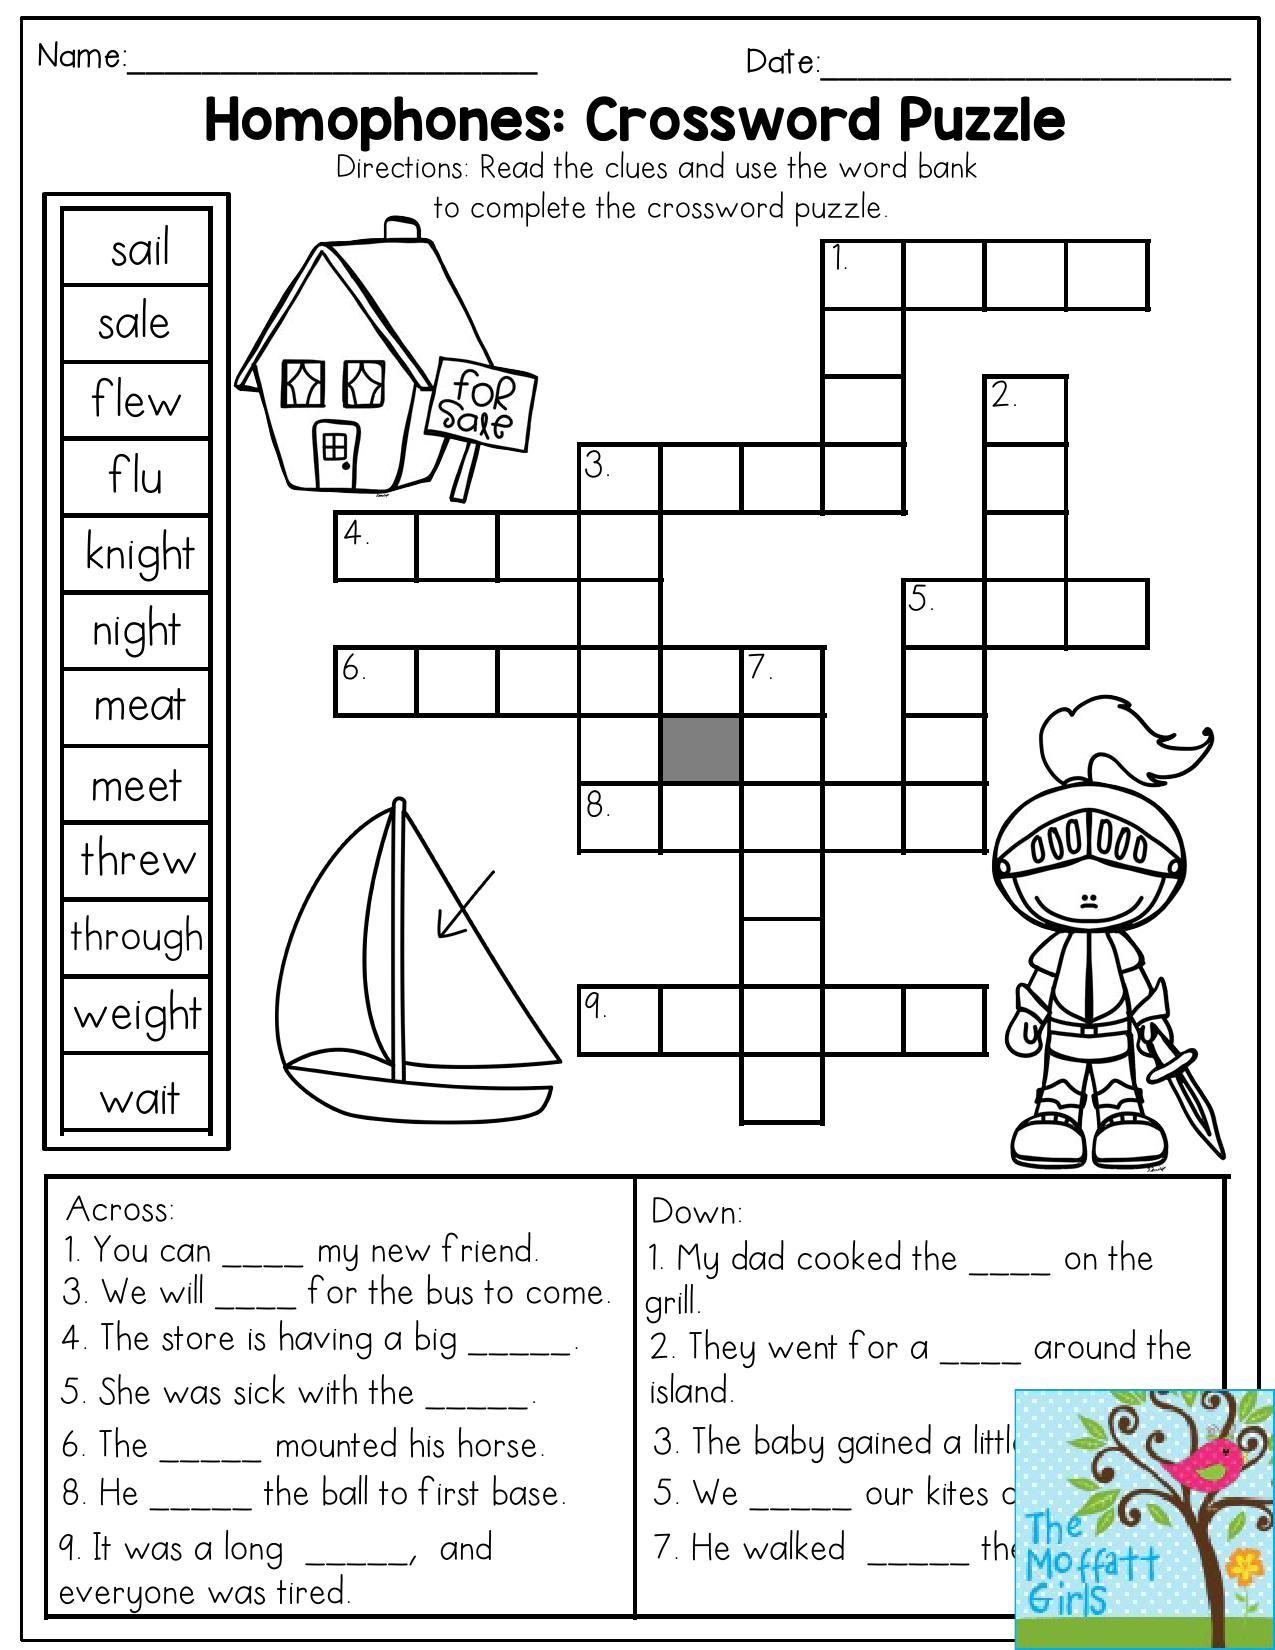 Homophones: Crossword Puzzle- Read The Clues And Use The Word Bank - Printable Crossword Puzzles For Grade 2